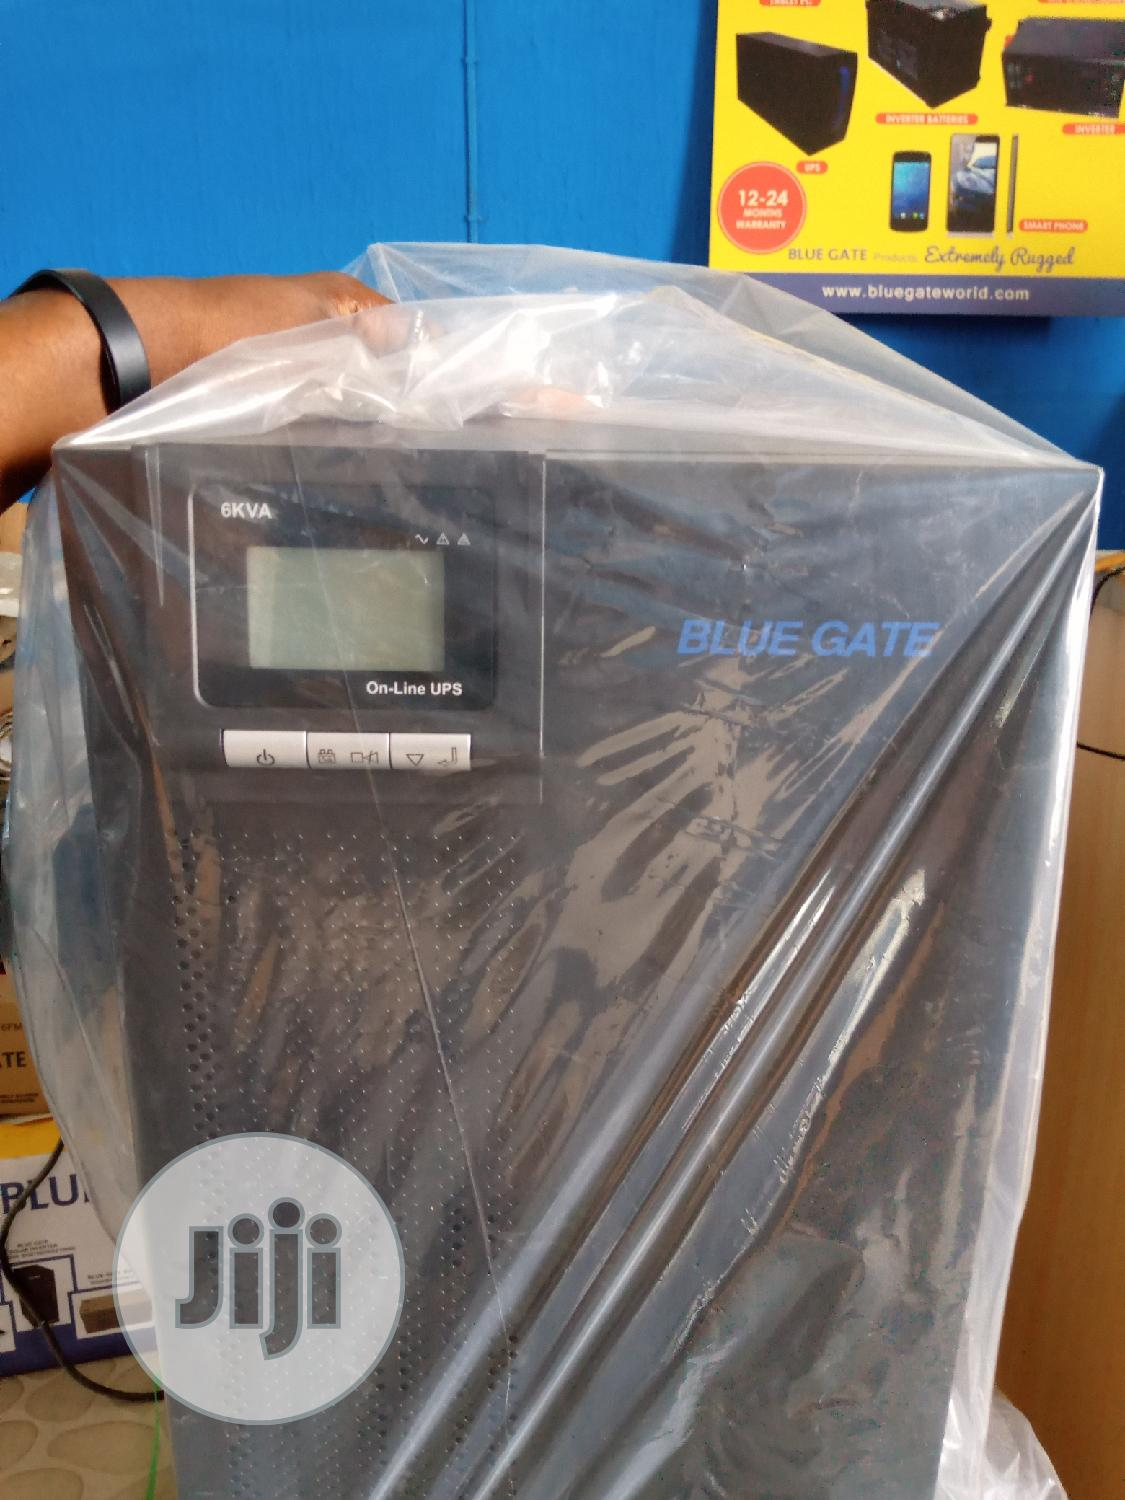 Blue Gate 6kva Industrial UPS(Online) | Computer Hardware for sale in Ojo, Lagos State, Nigeria